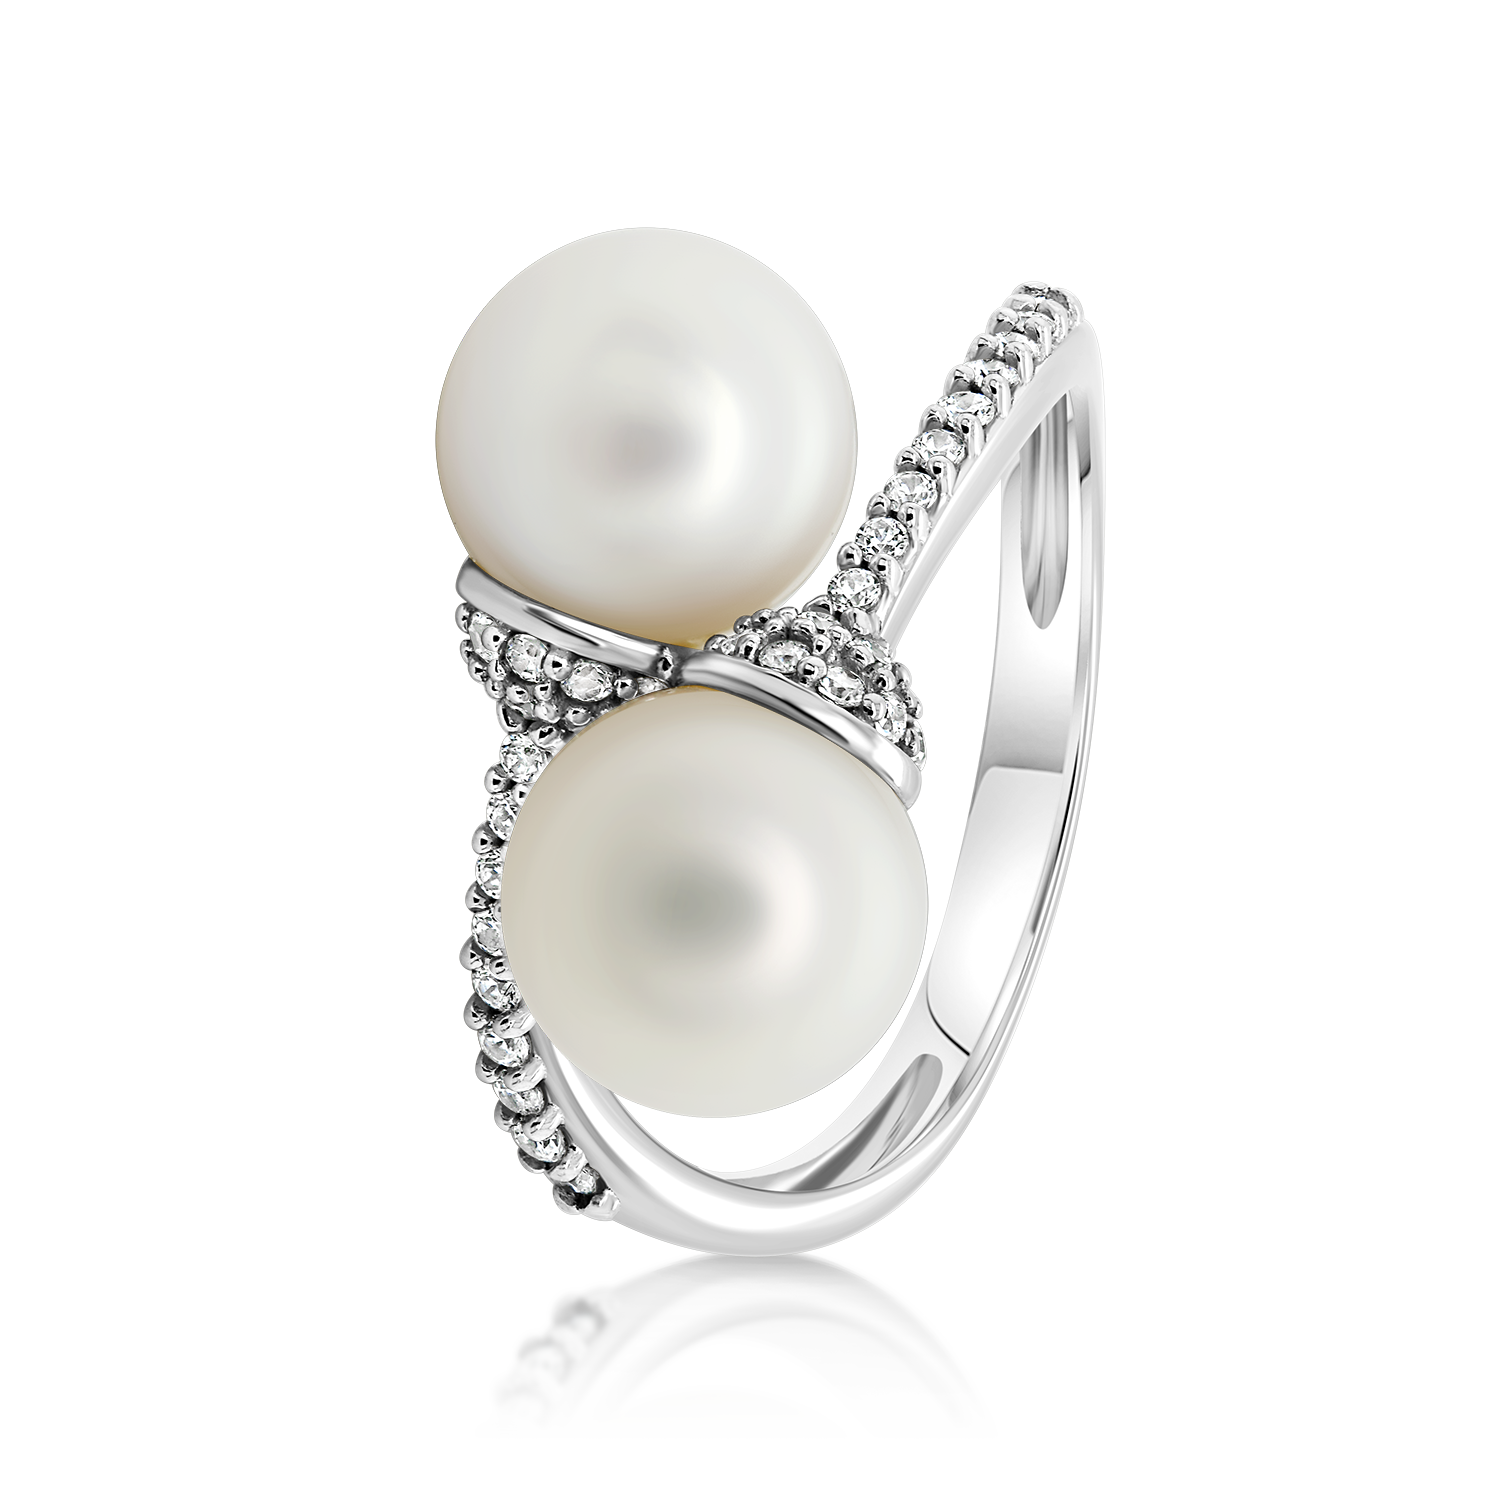 Jewelry with precious stones Gold ring with pearls White